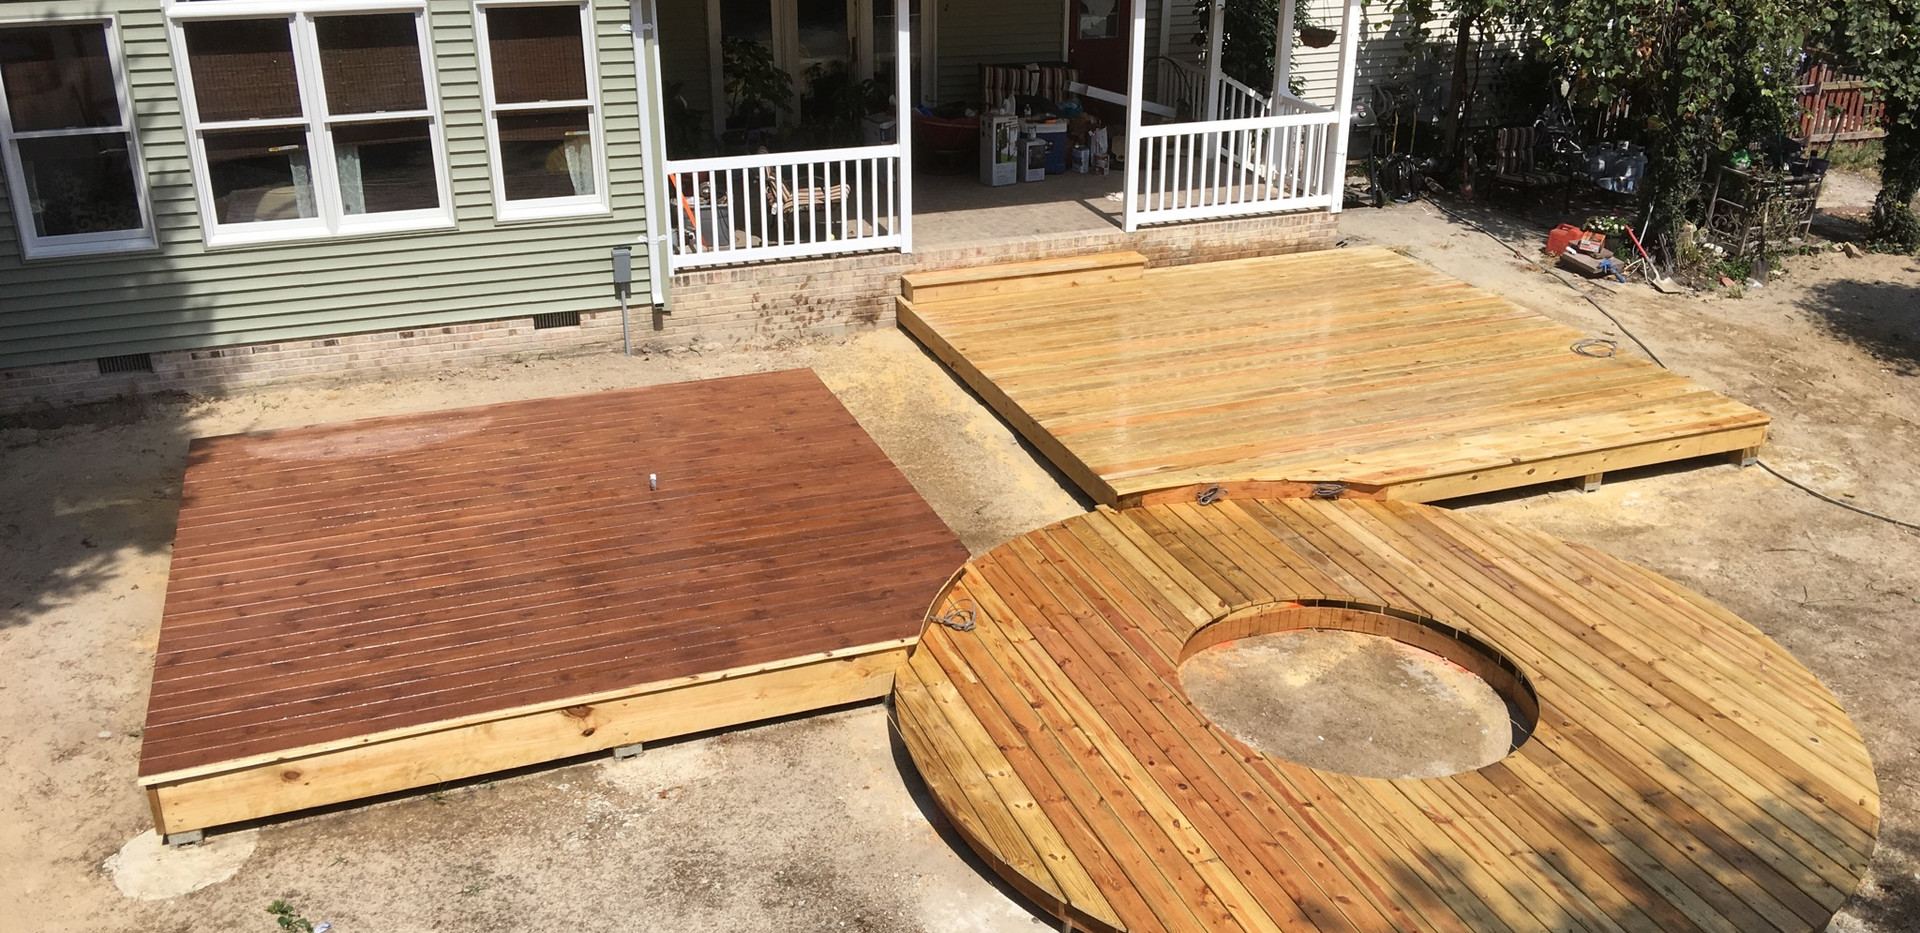 OC Home Services Decks & Porches